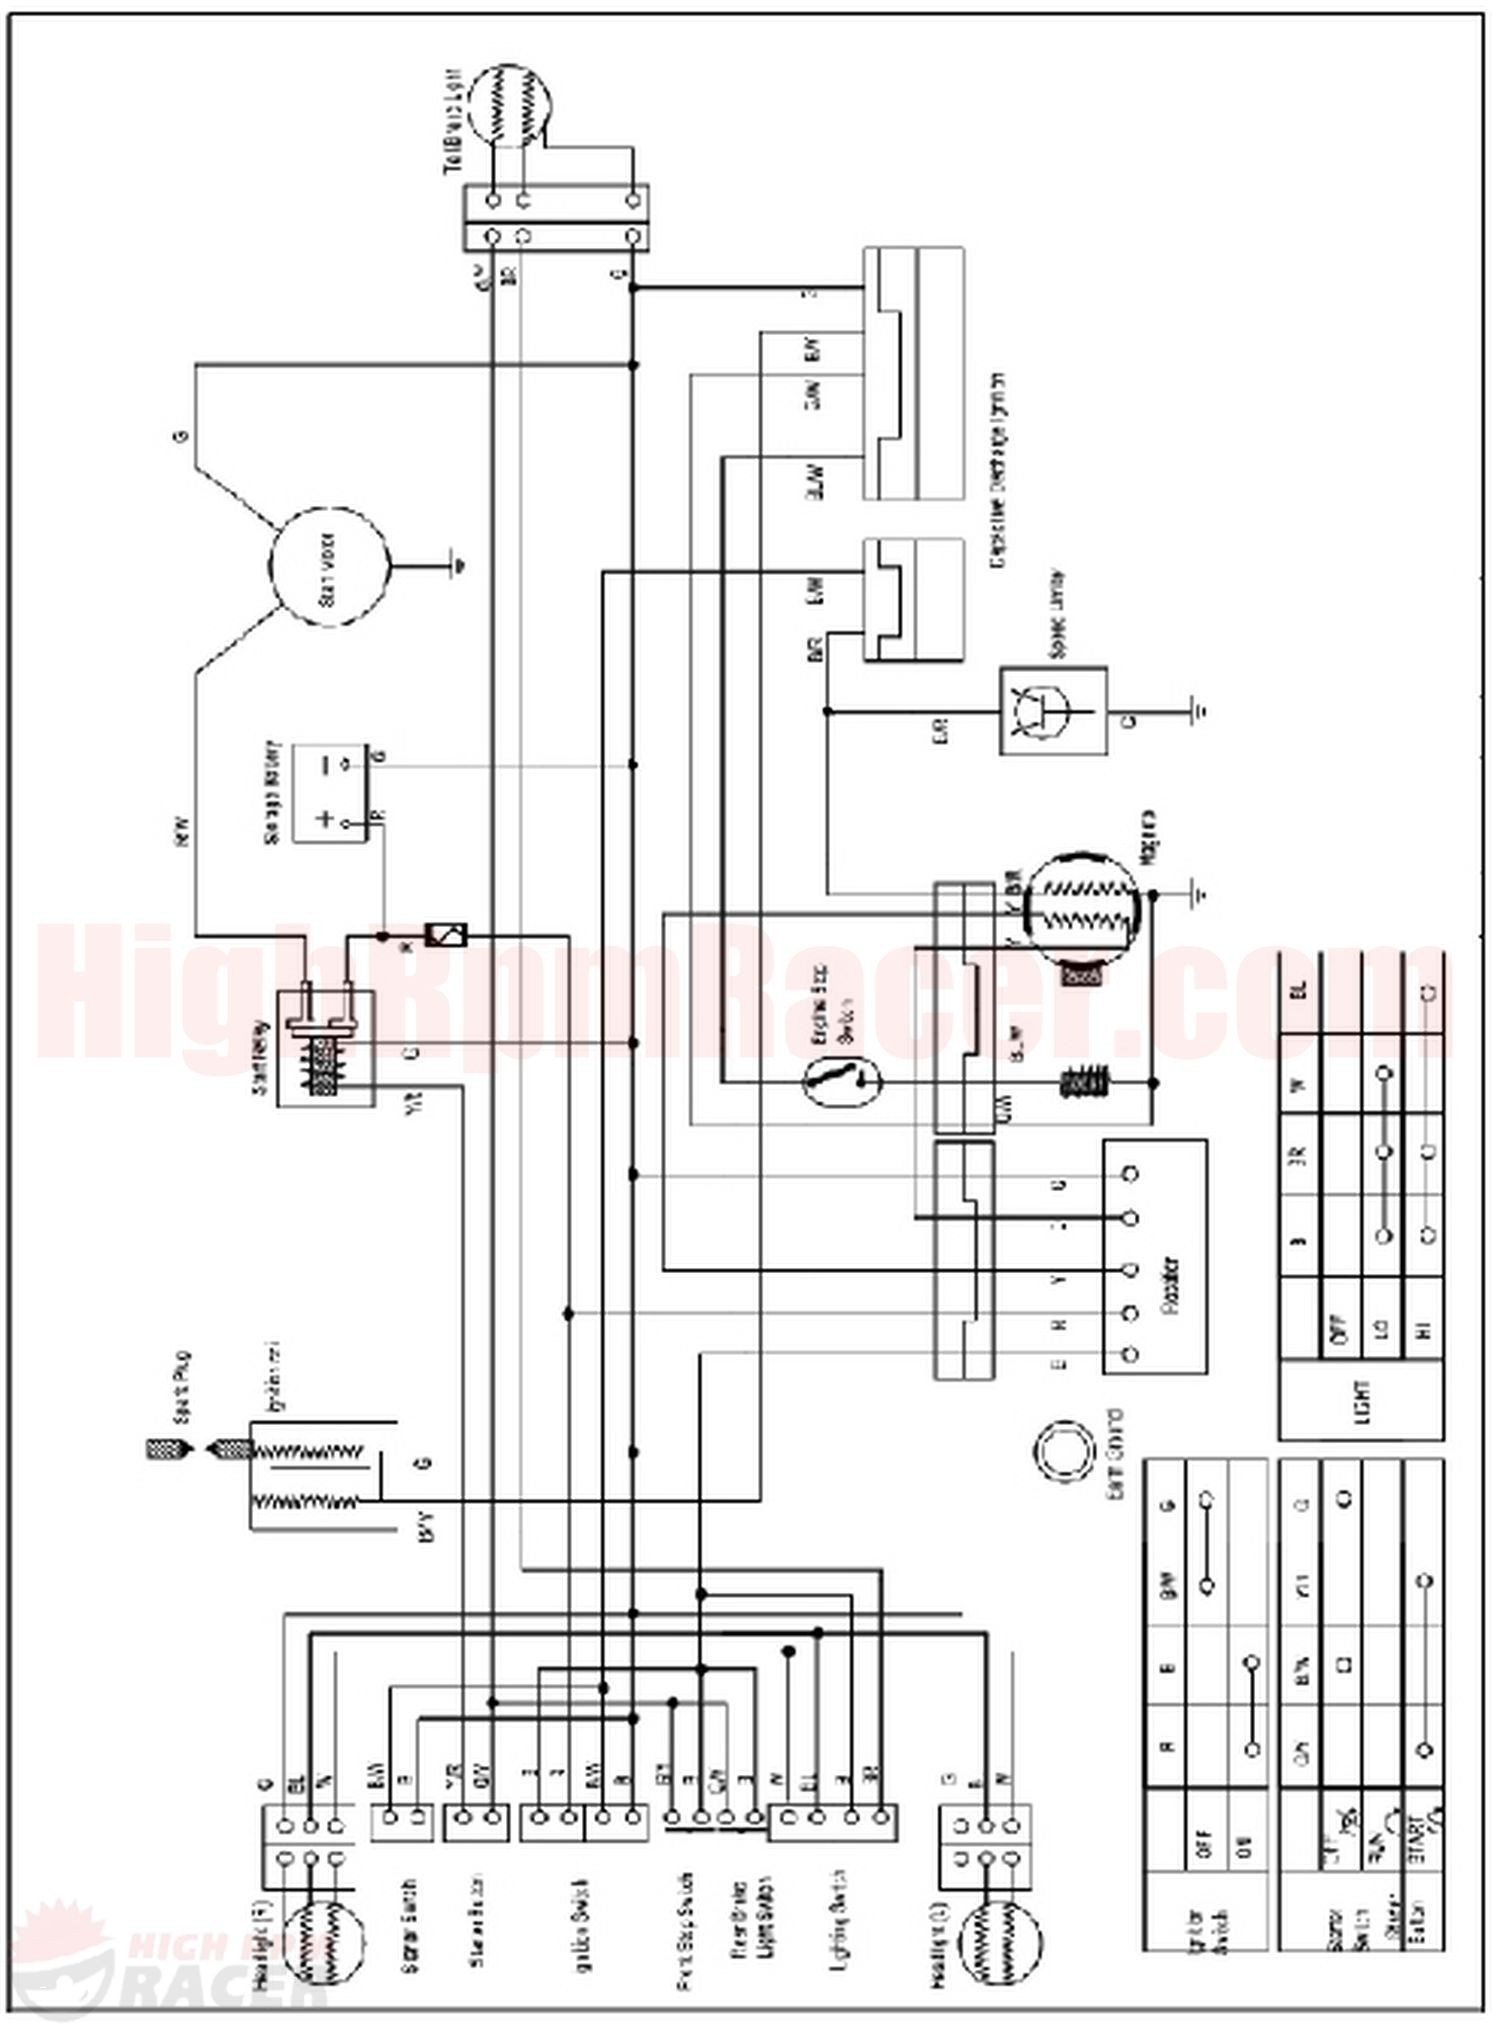 Wiring Diagram for 110cc Chinese atv Diagram] Chinese 110cc Pocket Rocket Wiring Diagram Full Of Wiring Diagram for 110cc Chinese atv